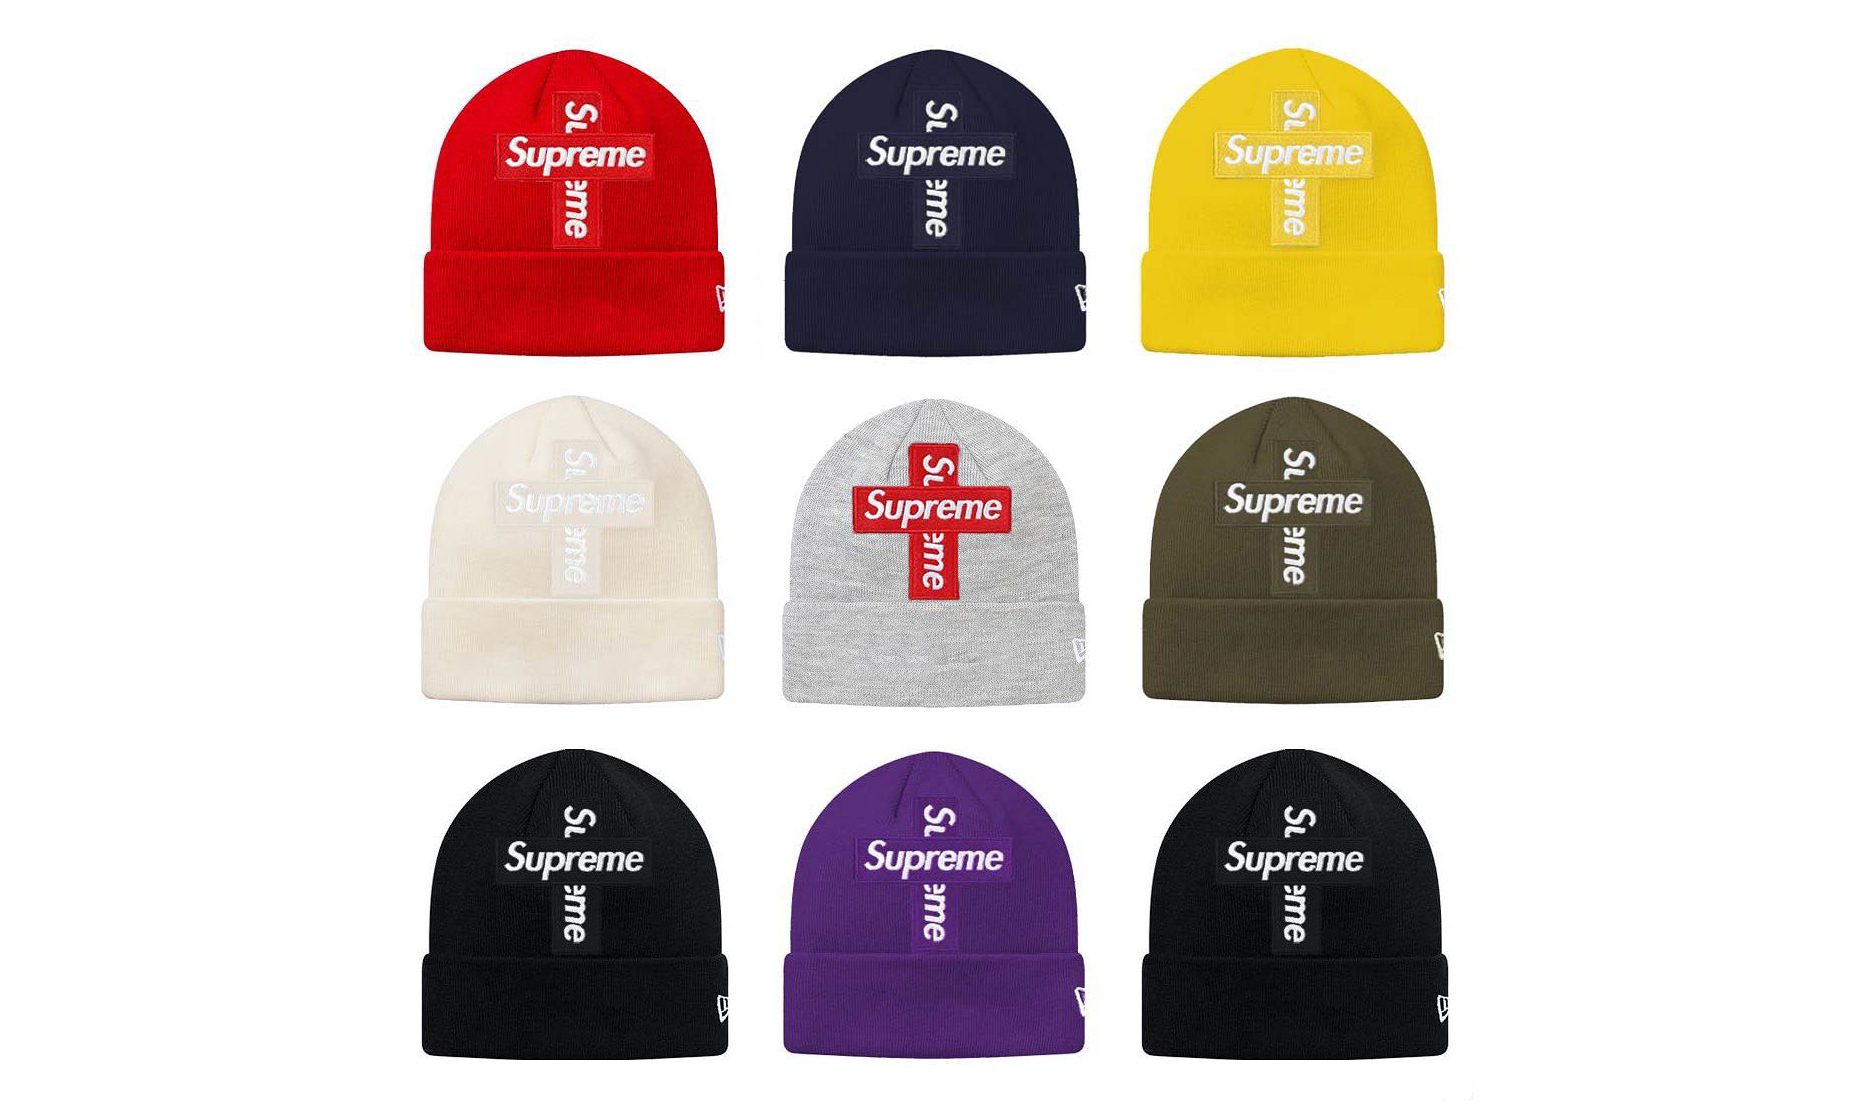 Supreme x New Era Cross Box Logo 冷帽本周发售